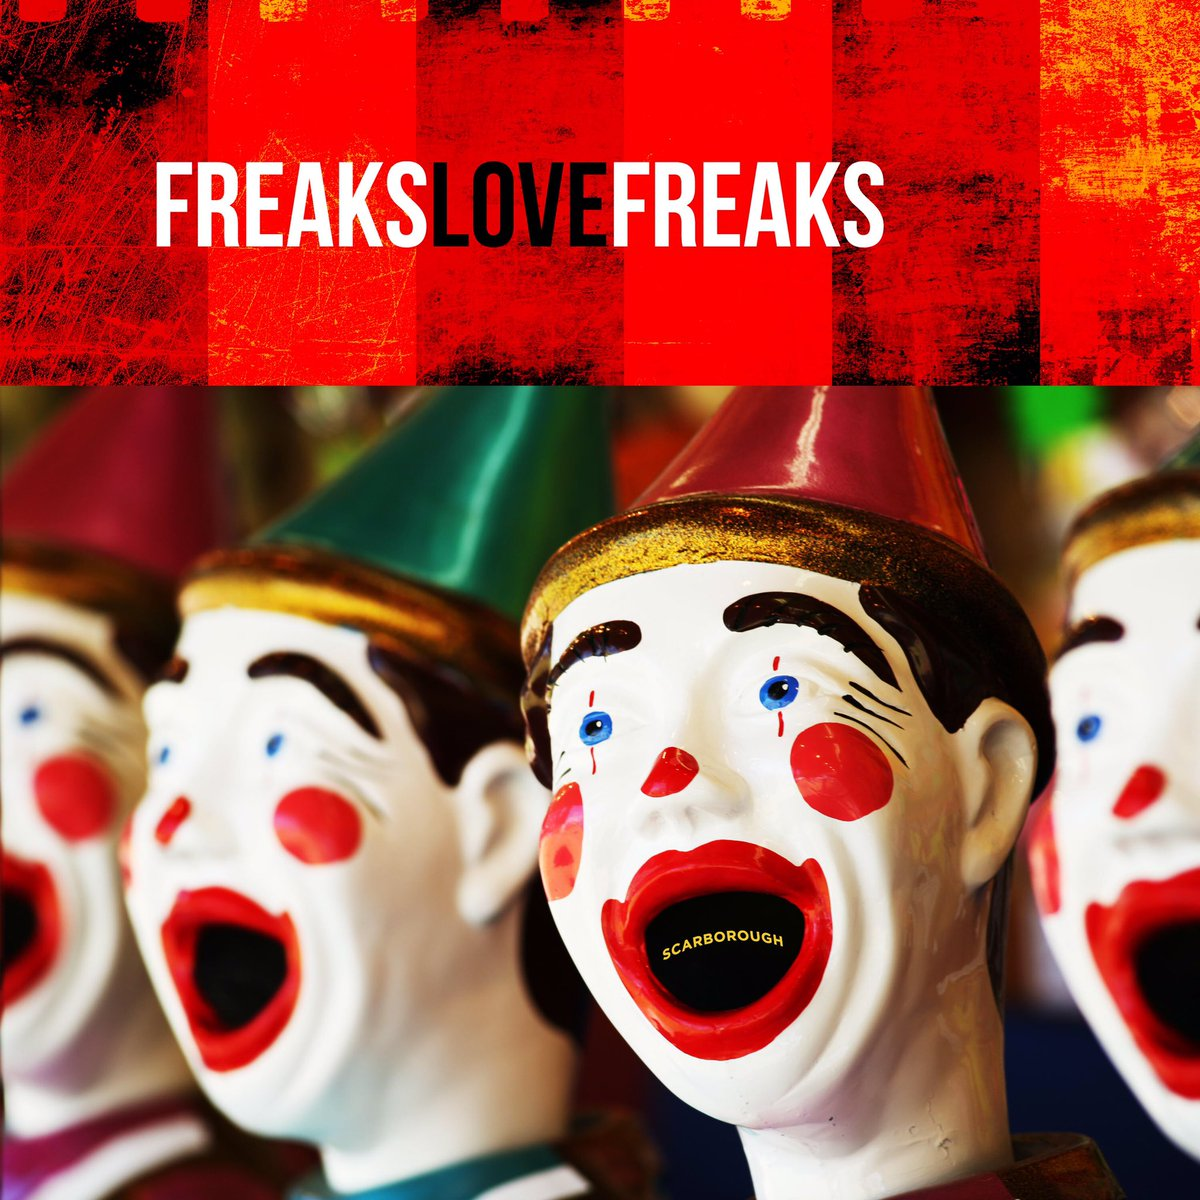 We're having our launch party for the #FreaksLoveFreaks EP Wednesday at 7pm at @CuttingRoomNYC.  @scarborough_